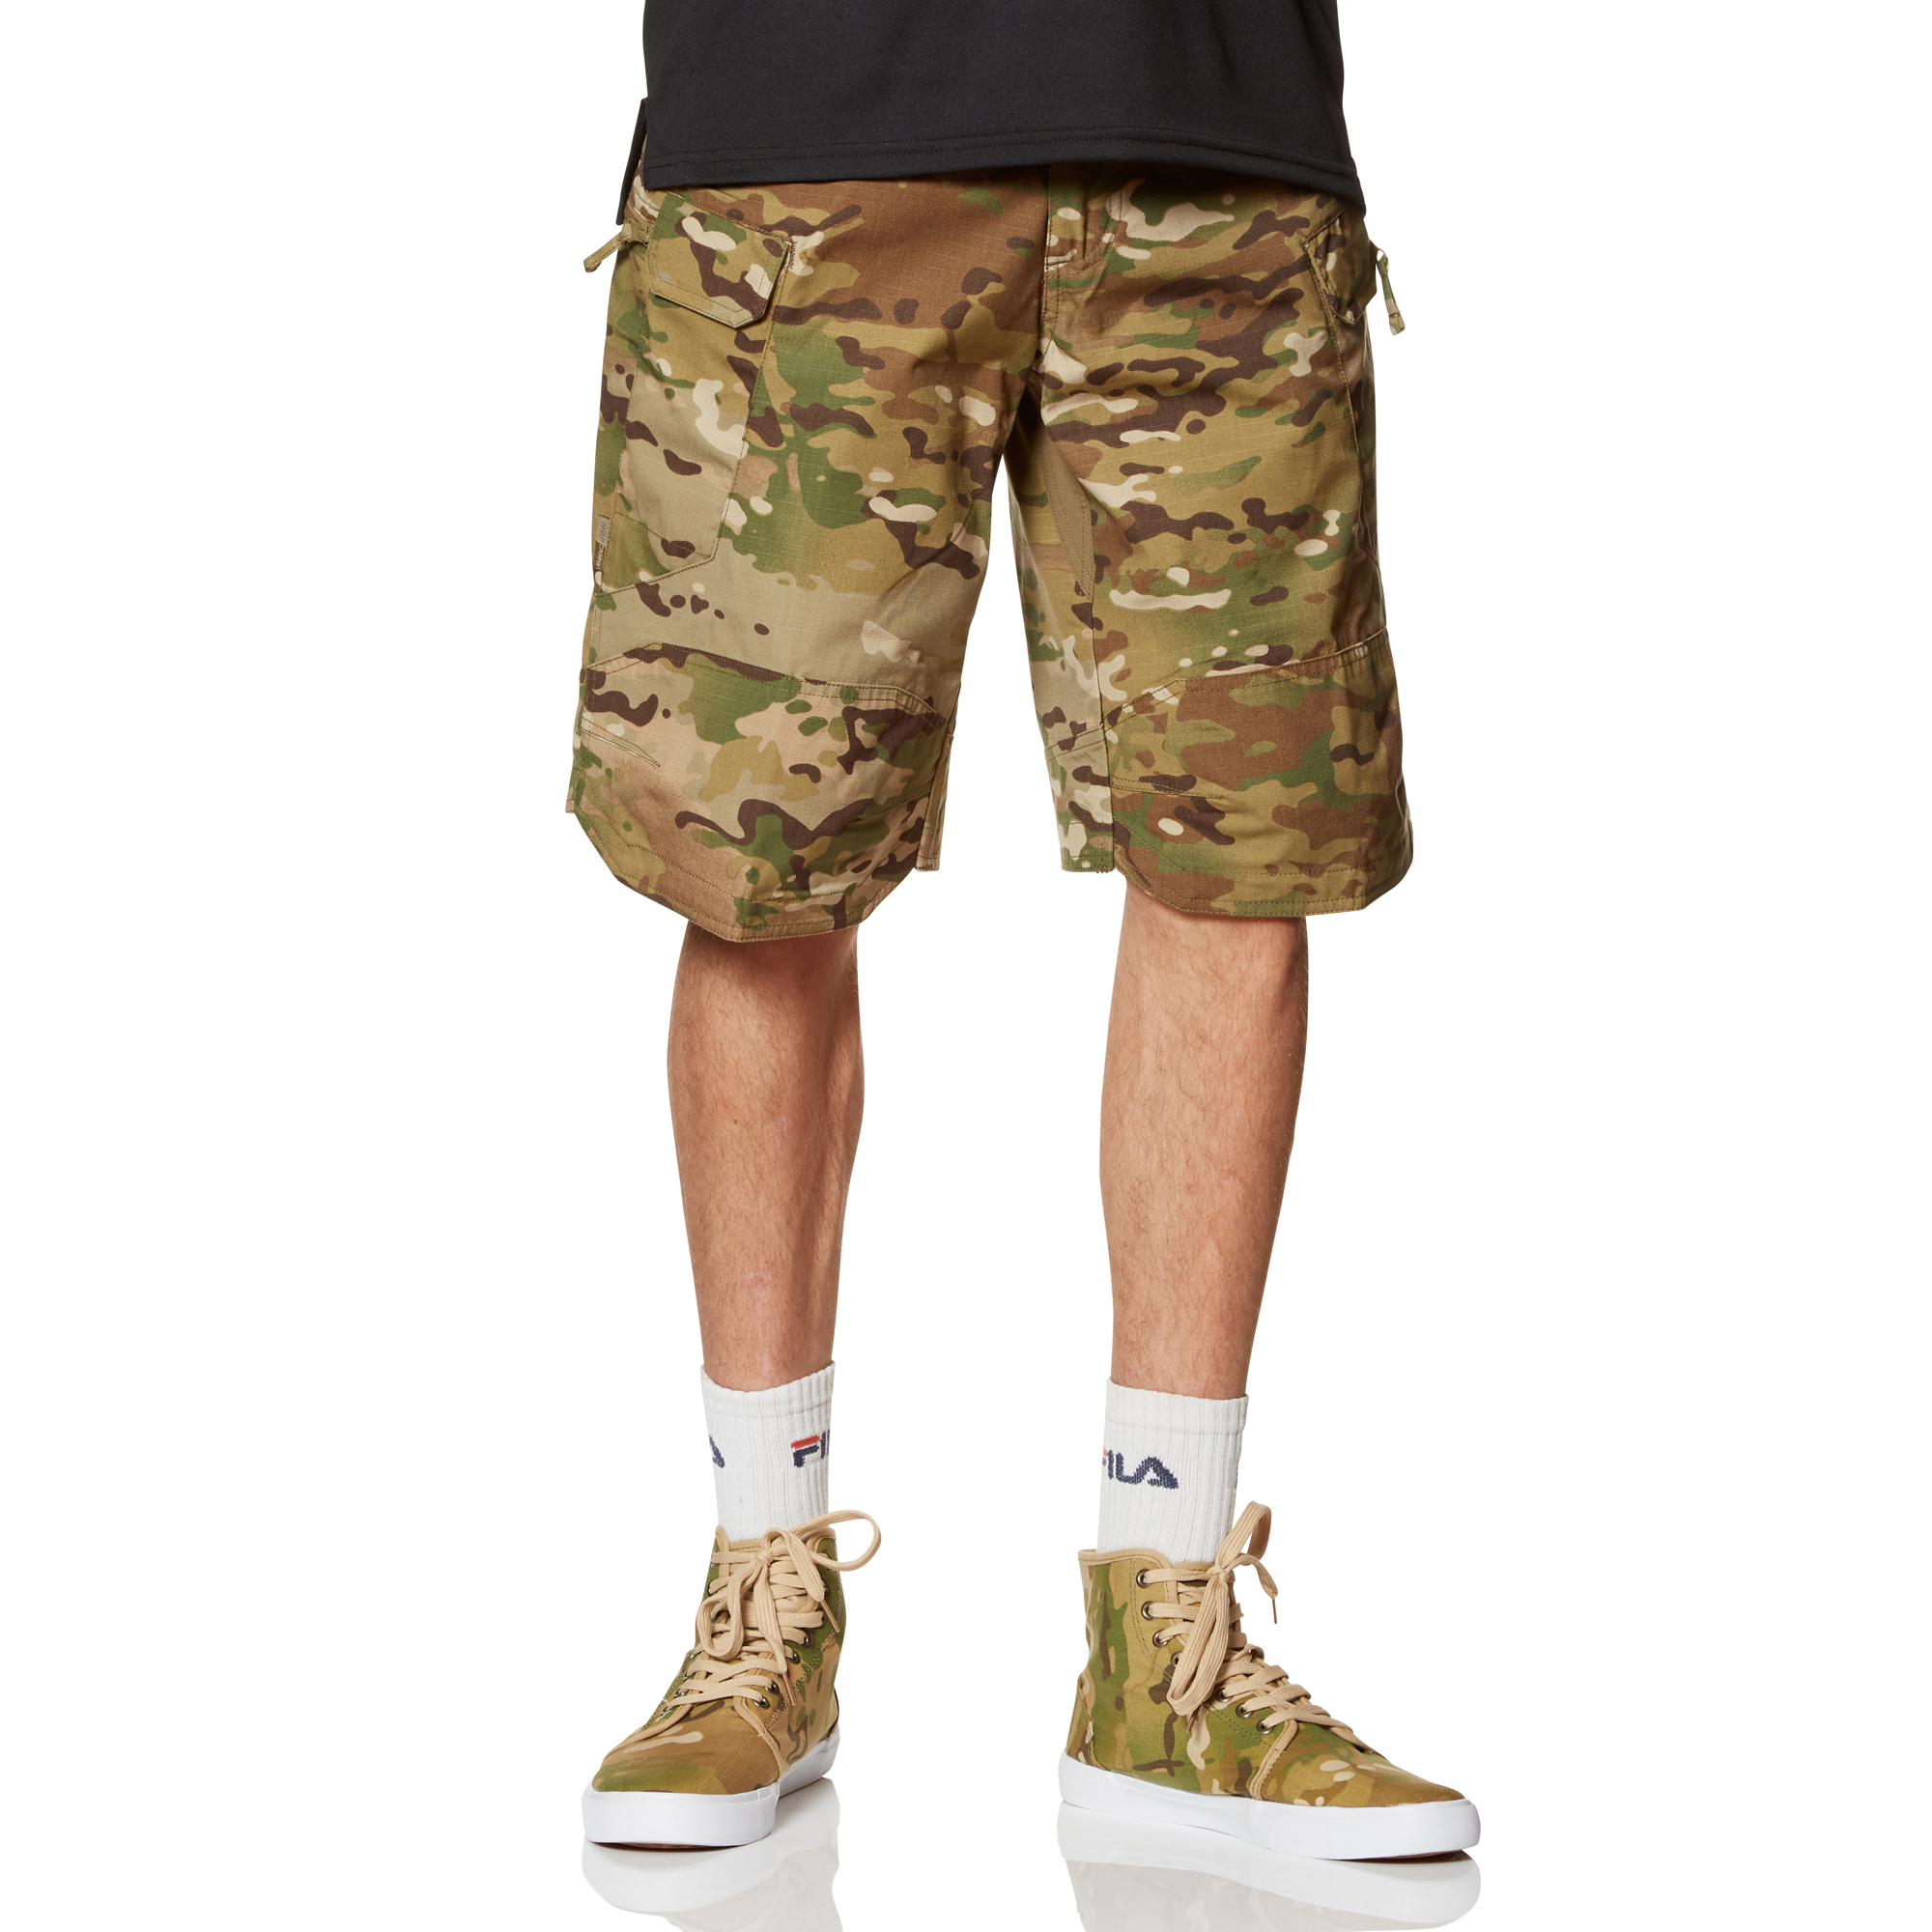 Urban Tactical shorts HELIKON-Tex UTS Flex 11-multicam